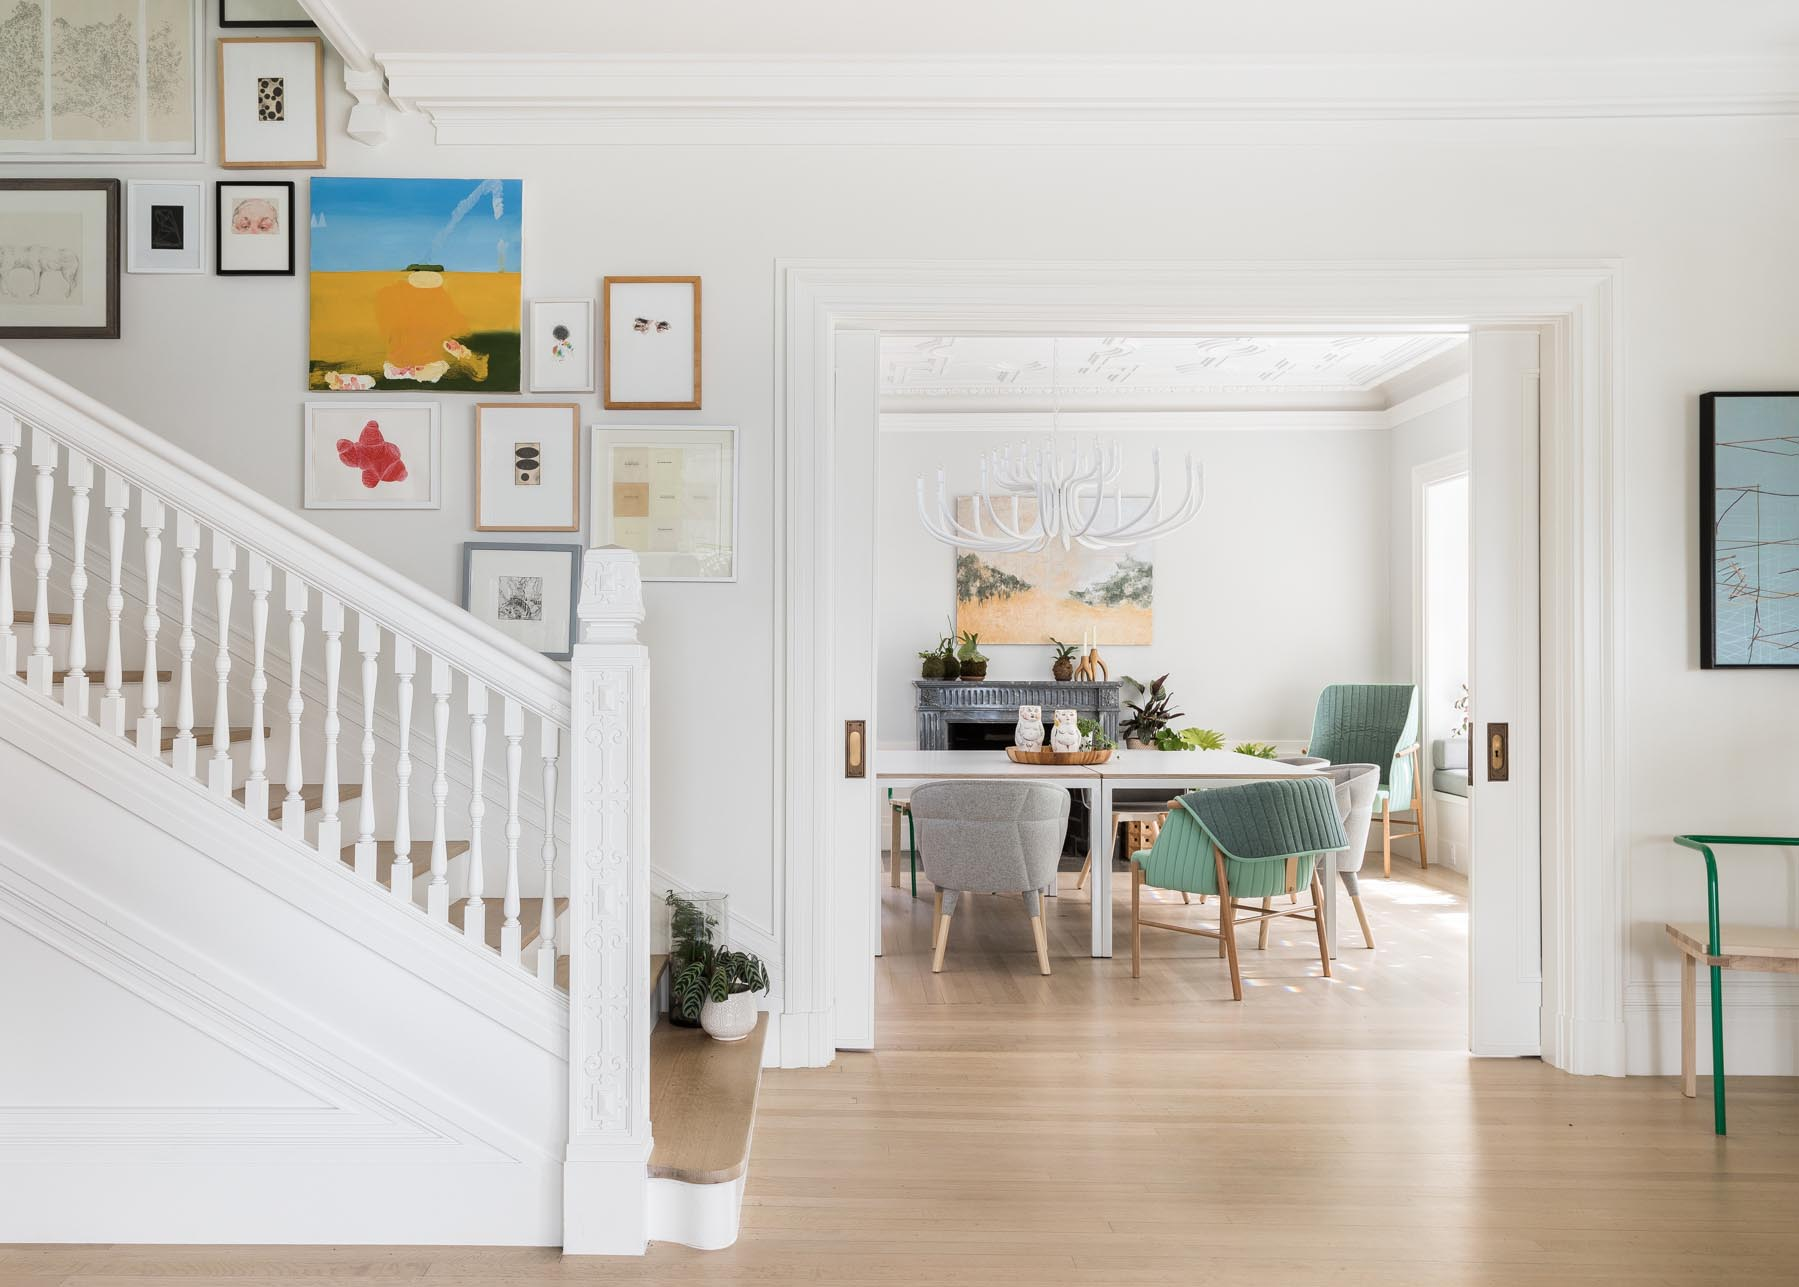 The remodeled contemporary interior includes wood floors and furnishings, and yet still retains some of the original design elements, which have been painted white, like the pocket doors, carved wood columns, and banister.